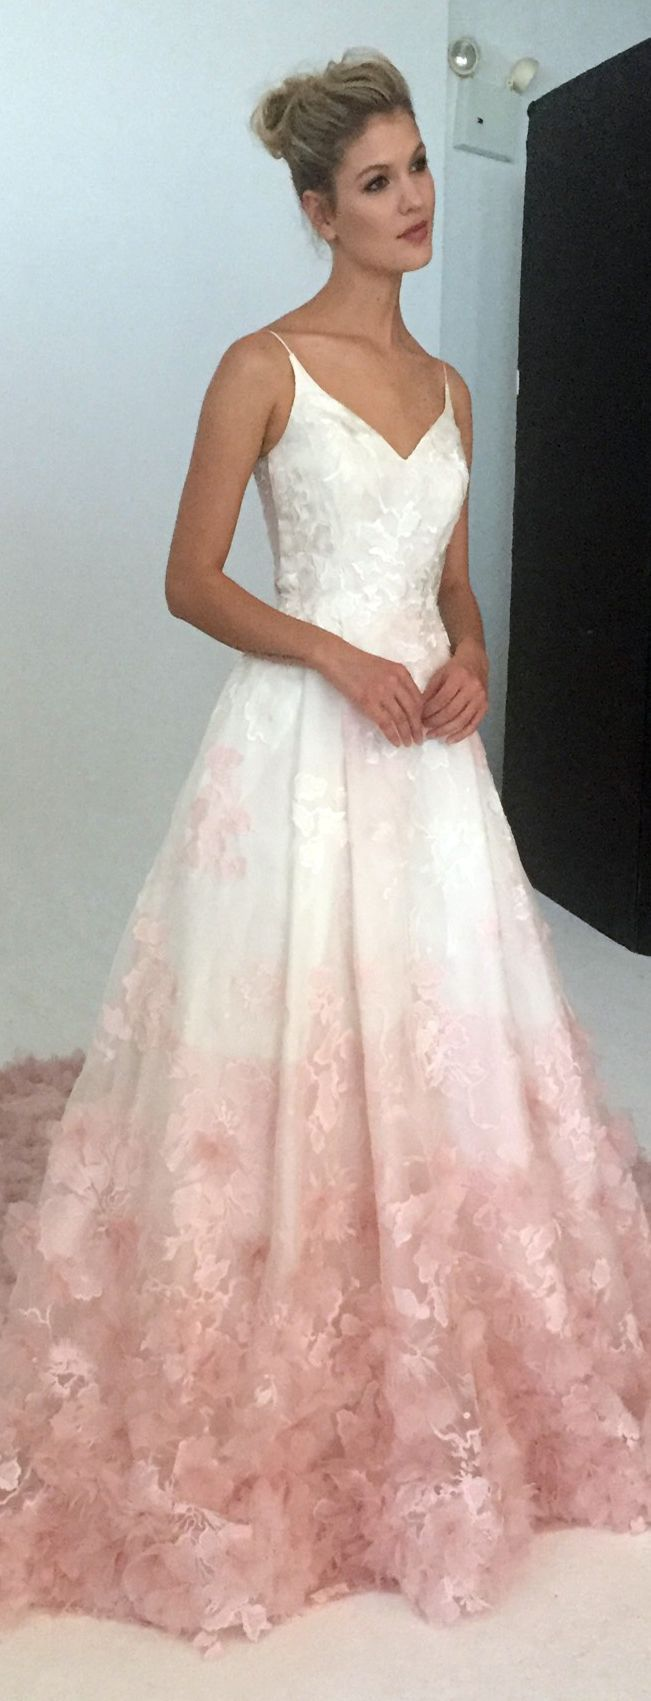 best prom u so on images on pinterest long dresses prom and